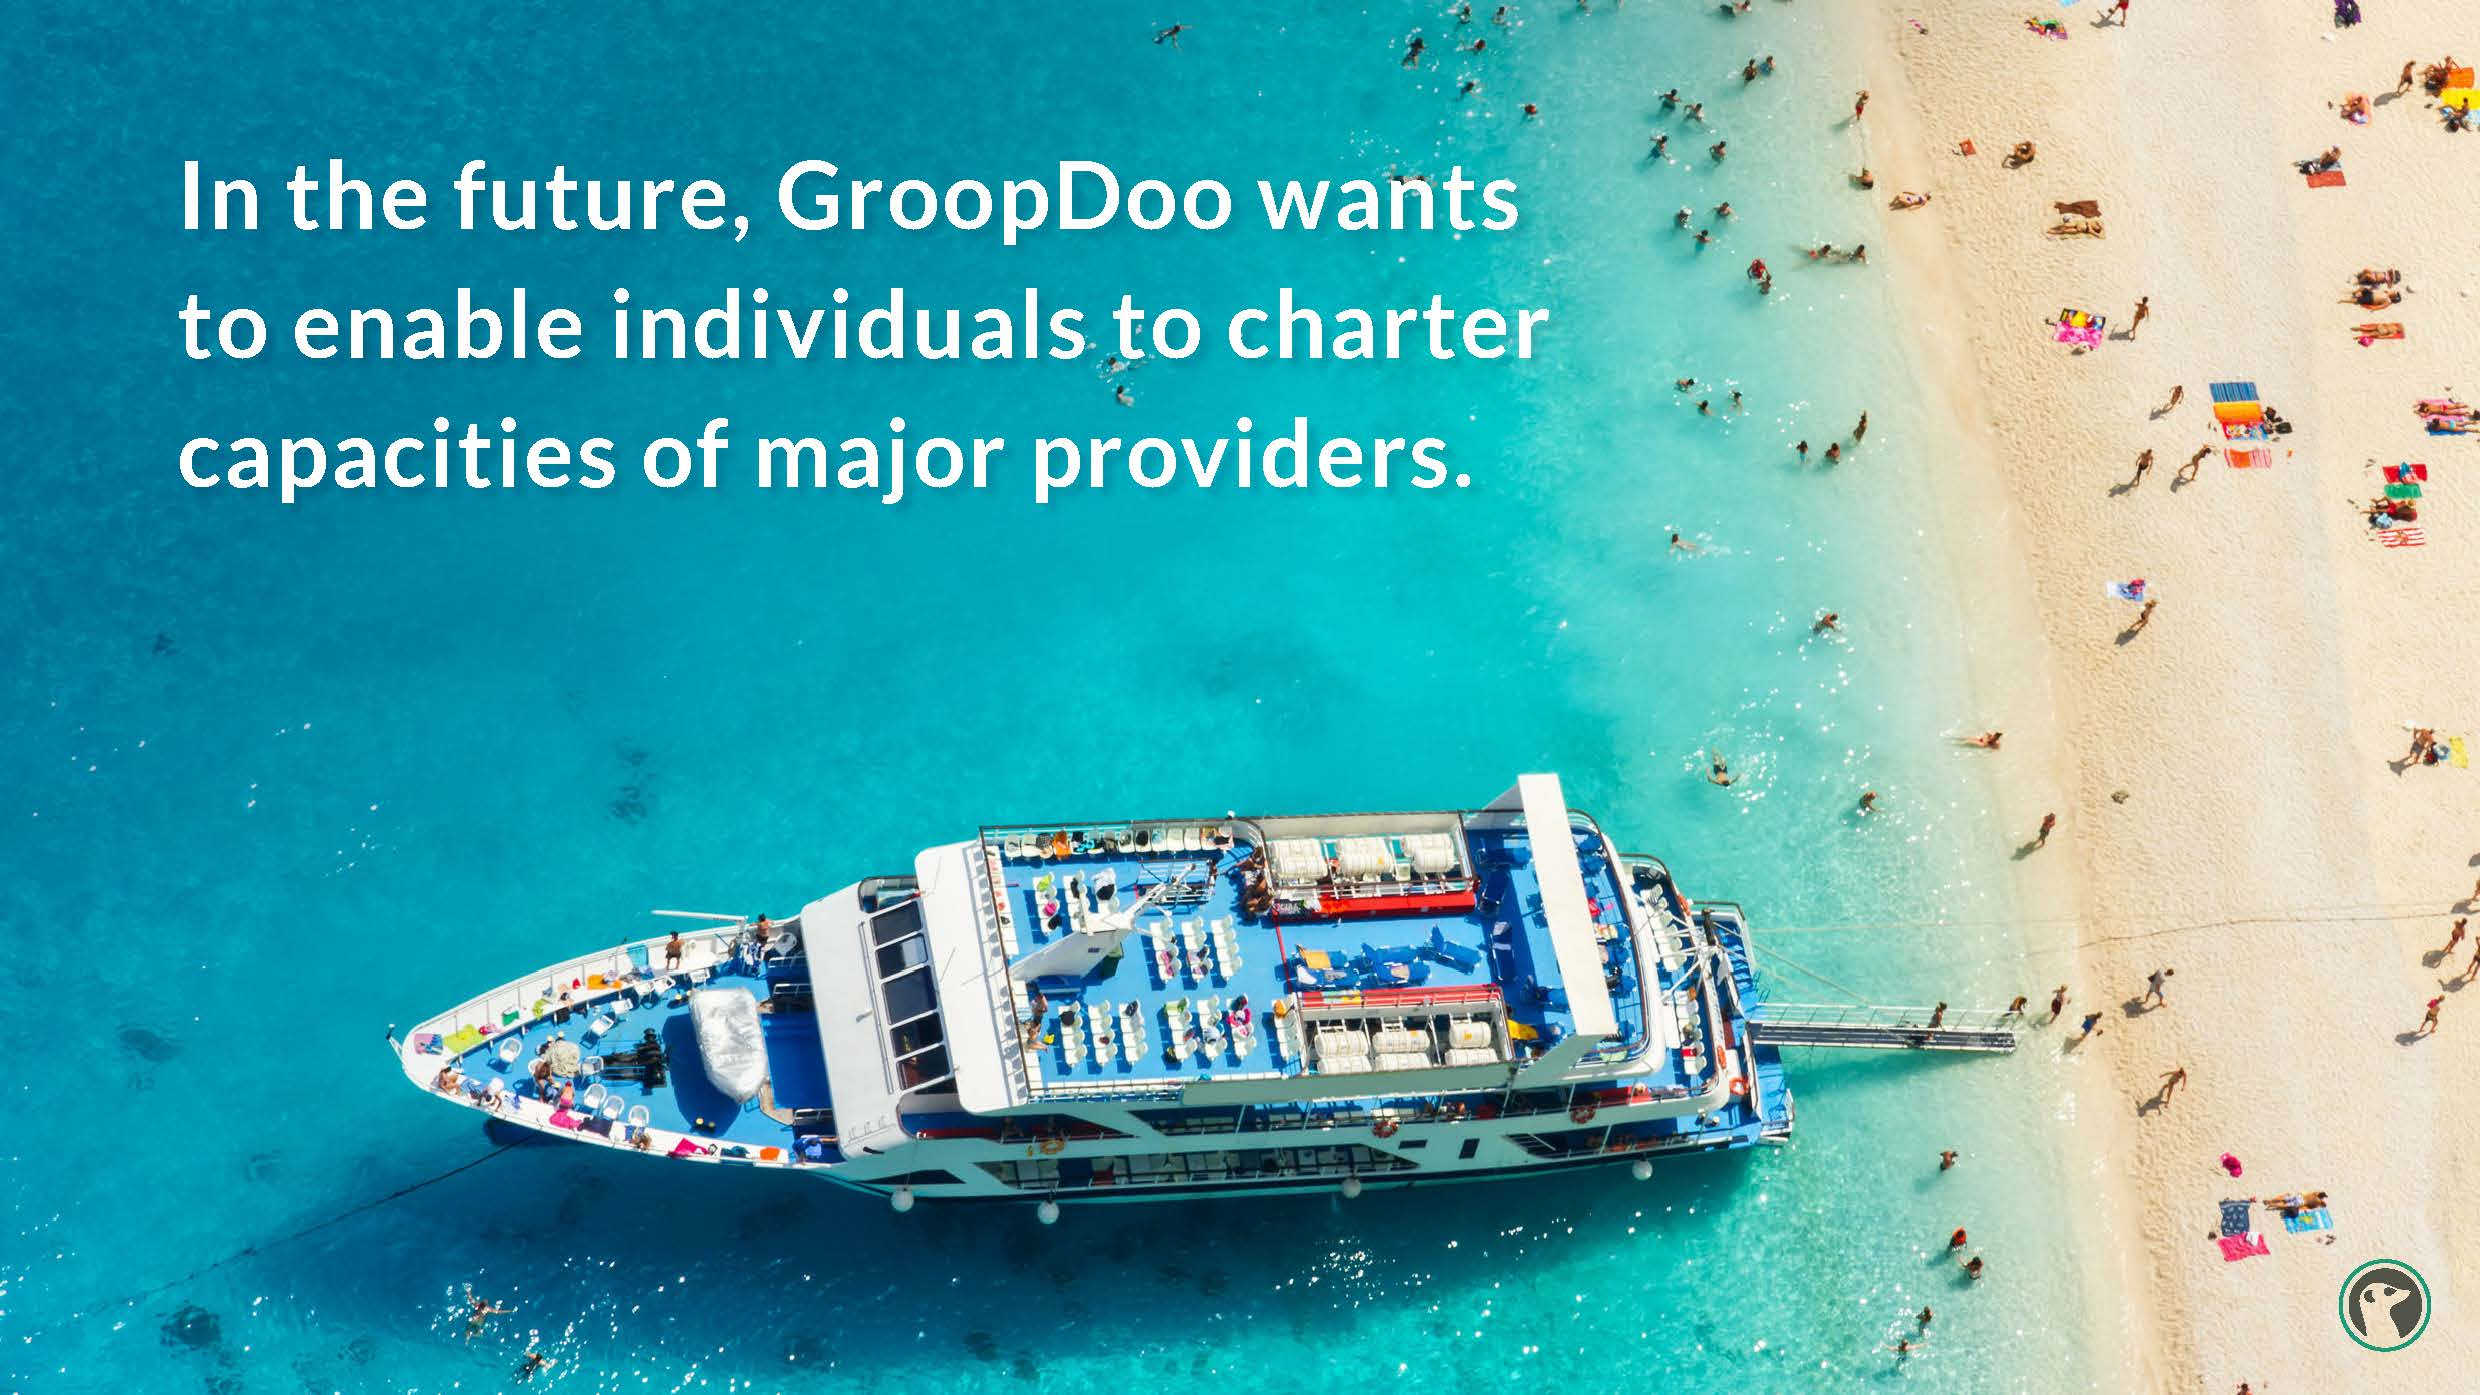 In the future, GroopDoo wants to enable individuals to charter capacities of major providers